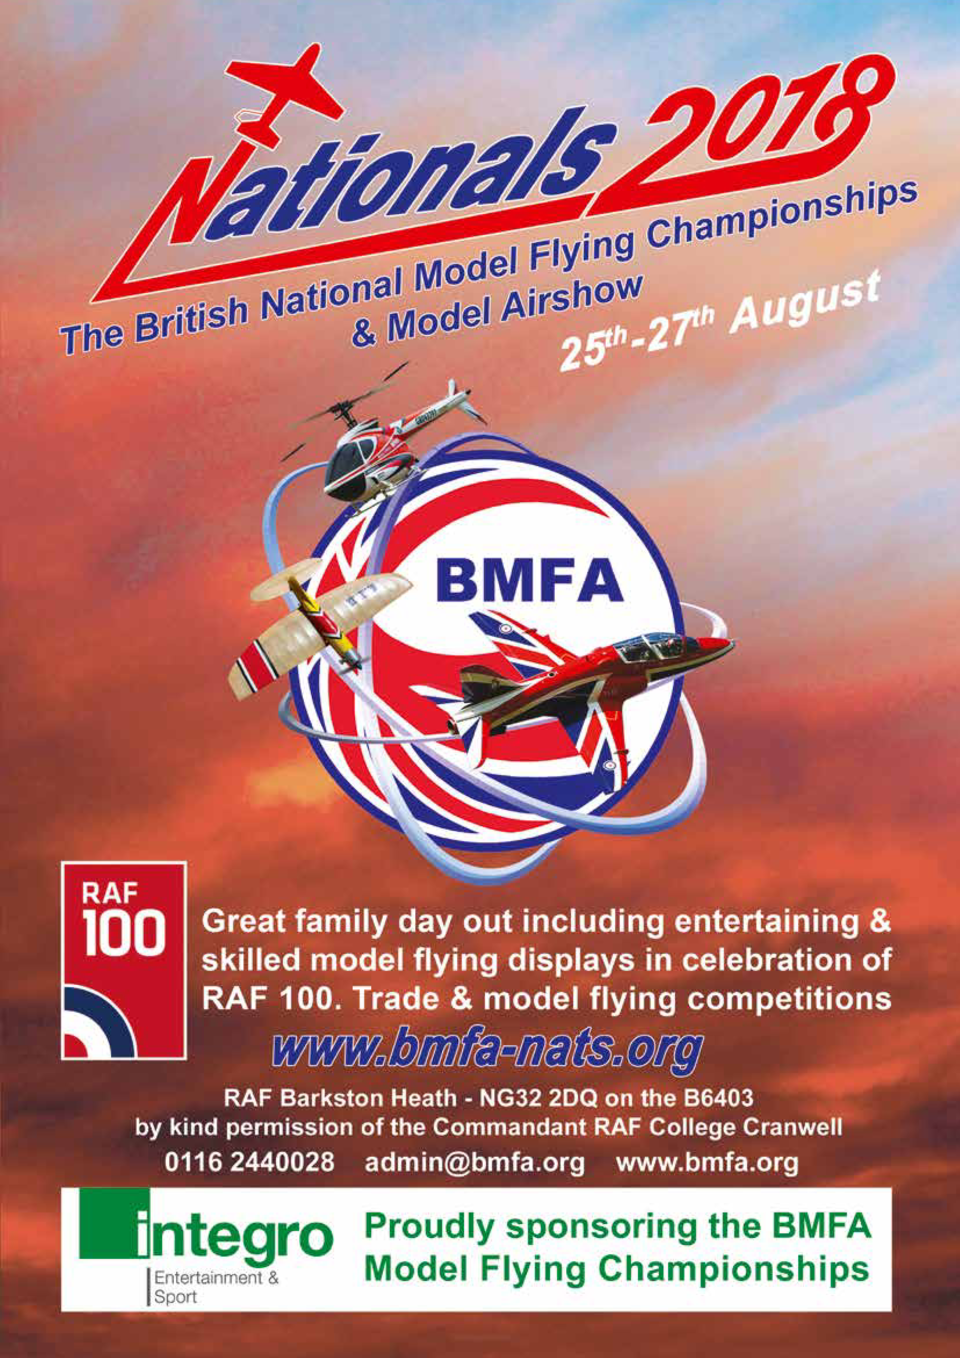 118  18  st 20 u g u A 27  25-  The British Model Flying Association  BMFA  will once again be holding its annual National...